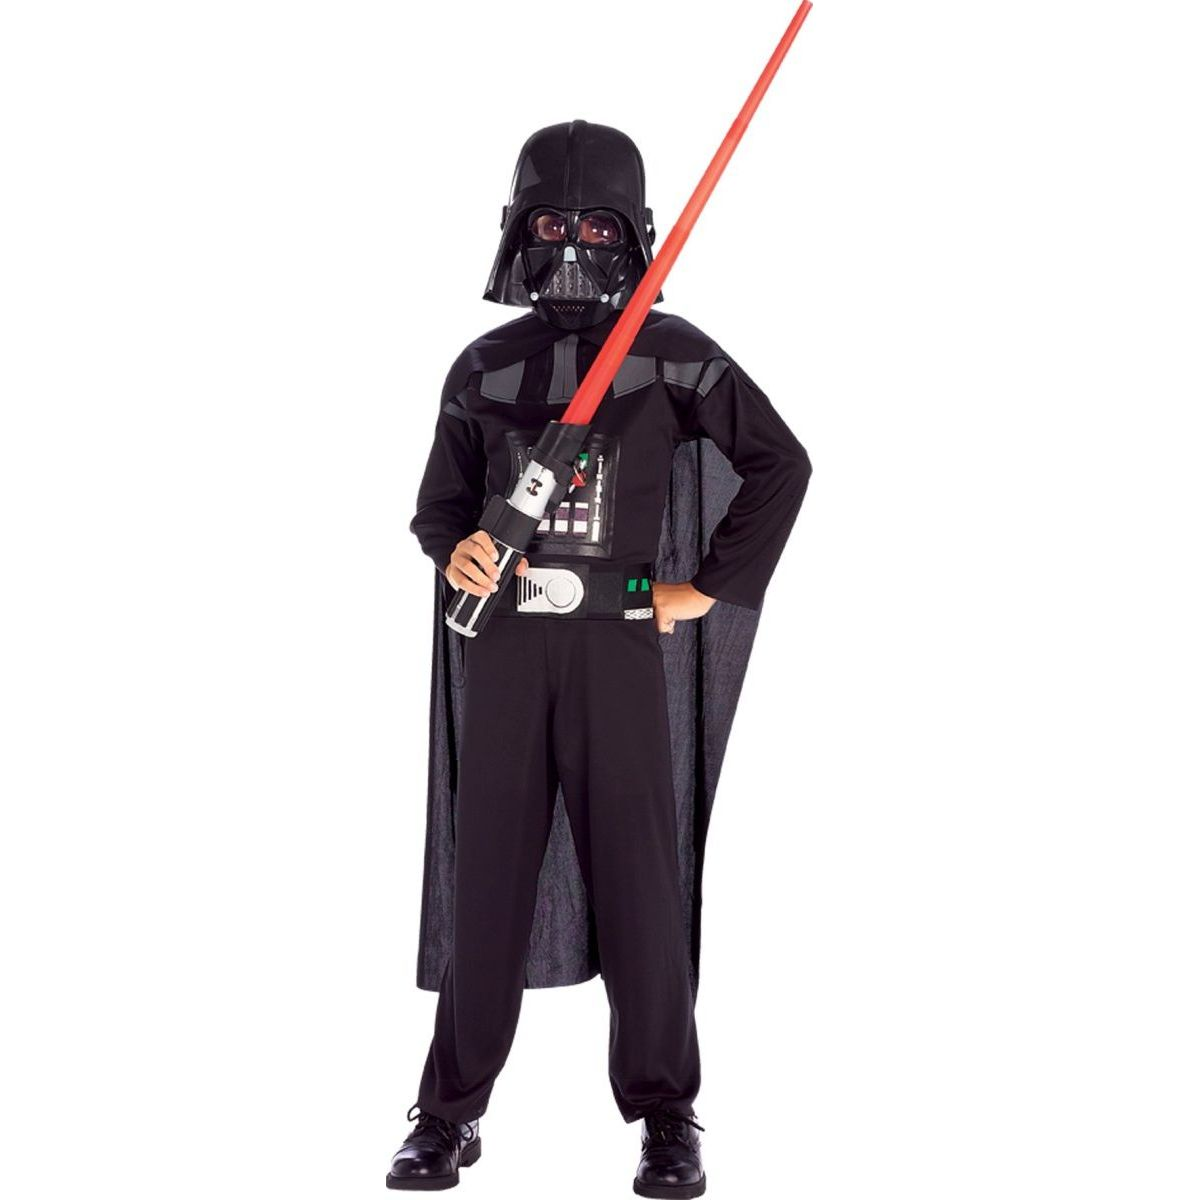 Rubie's Star Wars Darth Vader Action Suit